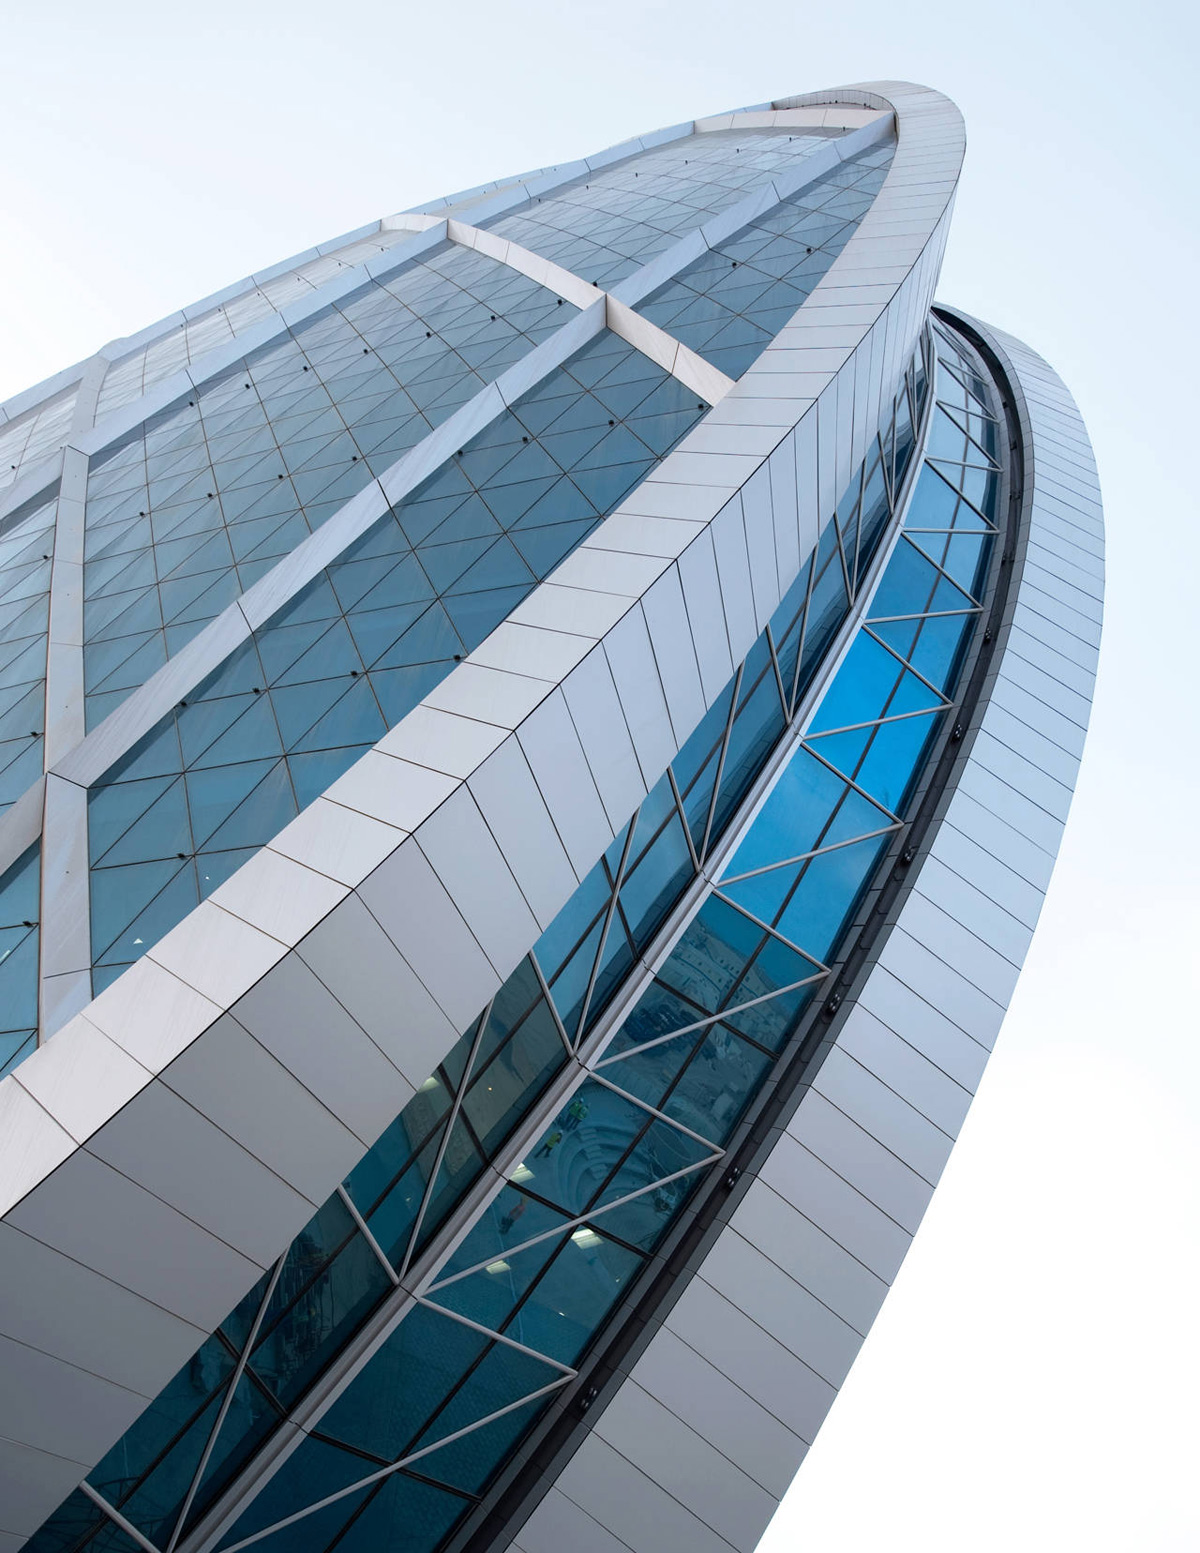 Aldar Headquarters Abu Dhabi UAE MZ Architects ALPOLIC ACM Akzo Nobel Interpon D3000 Lumiflon FEVE Resin